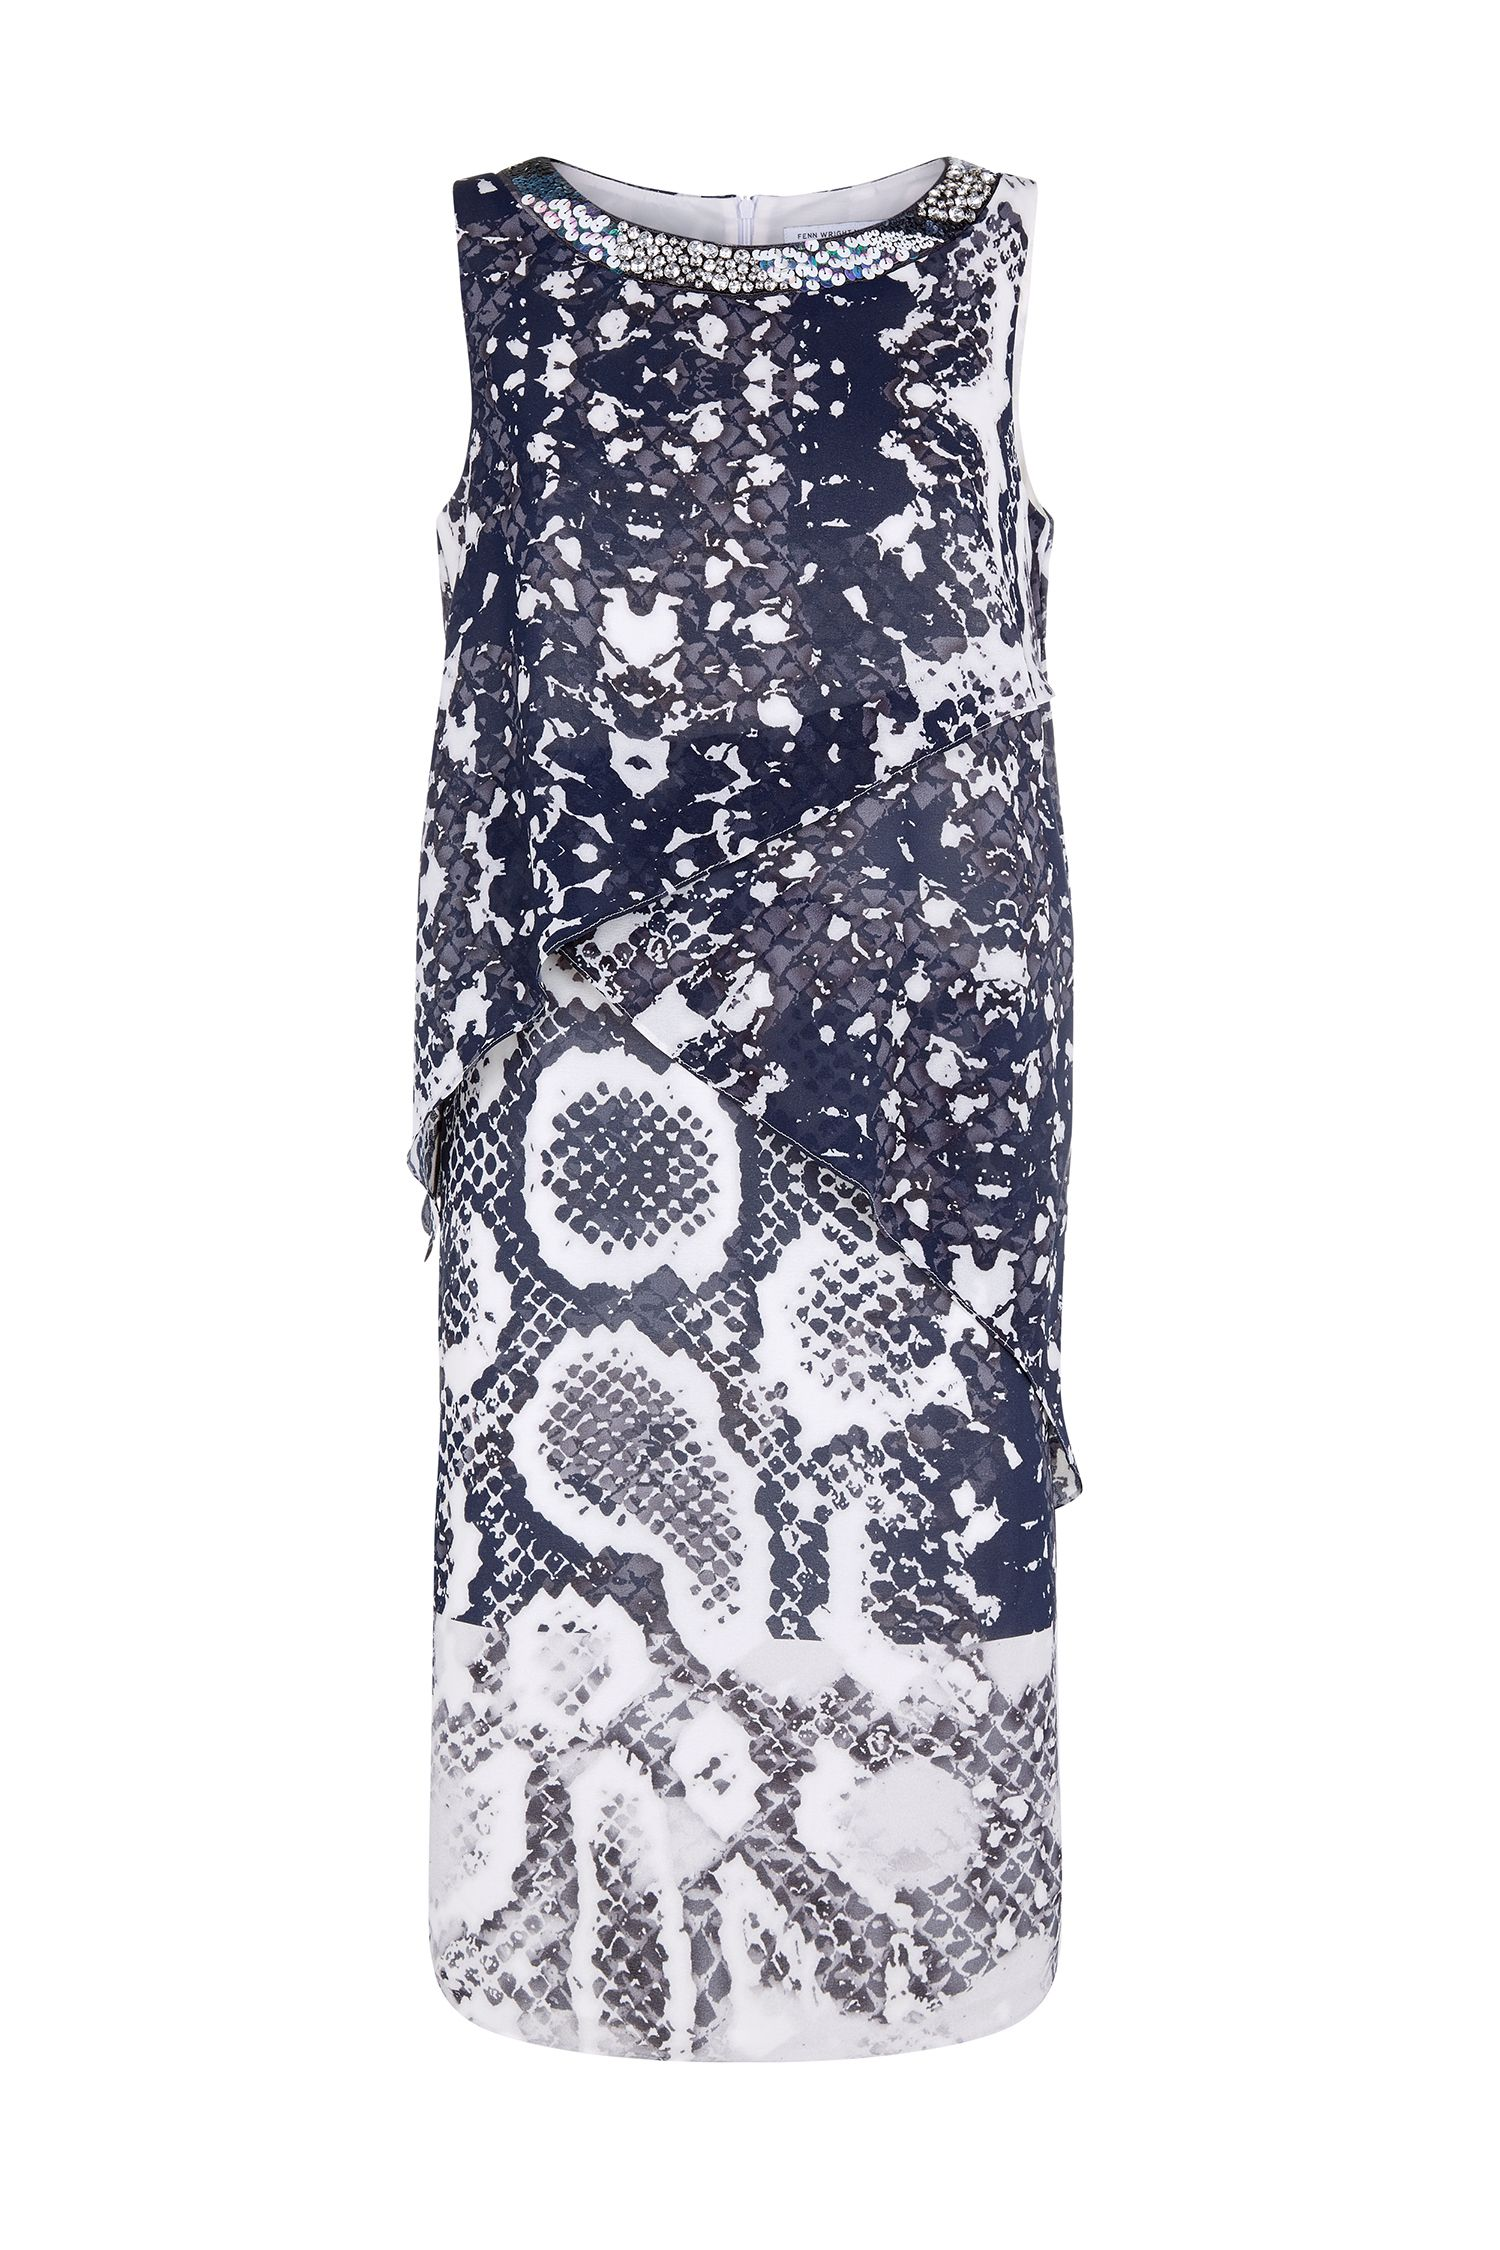 Fenn Wright Manson Astelia Dress, Multi-Coloured